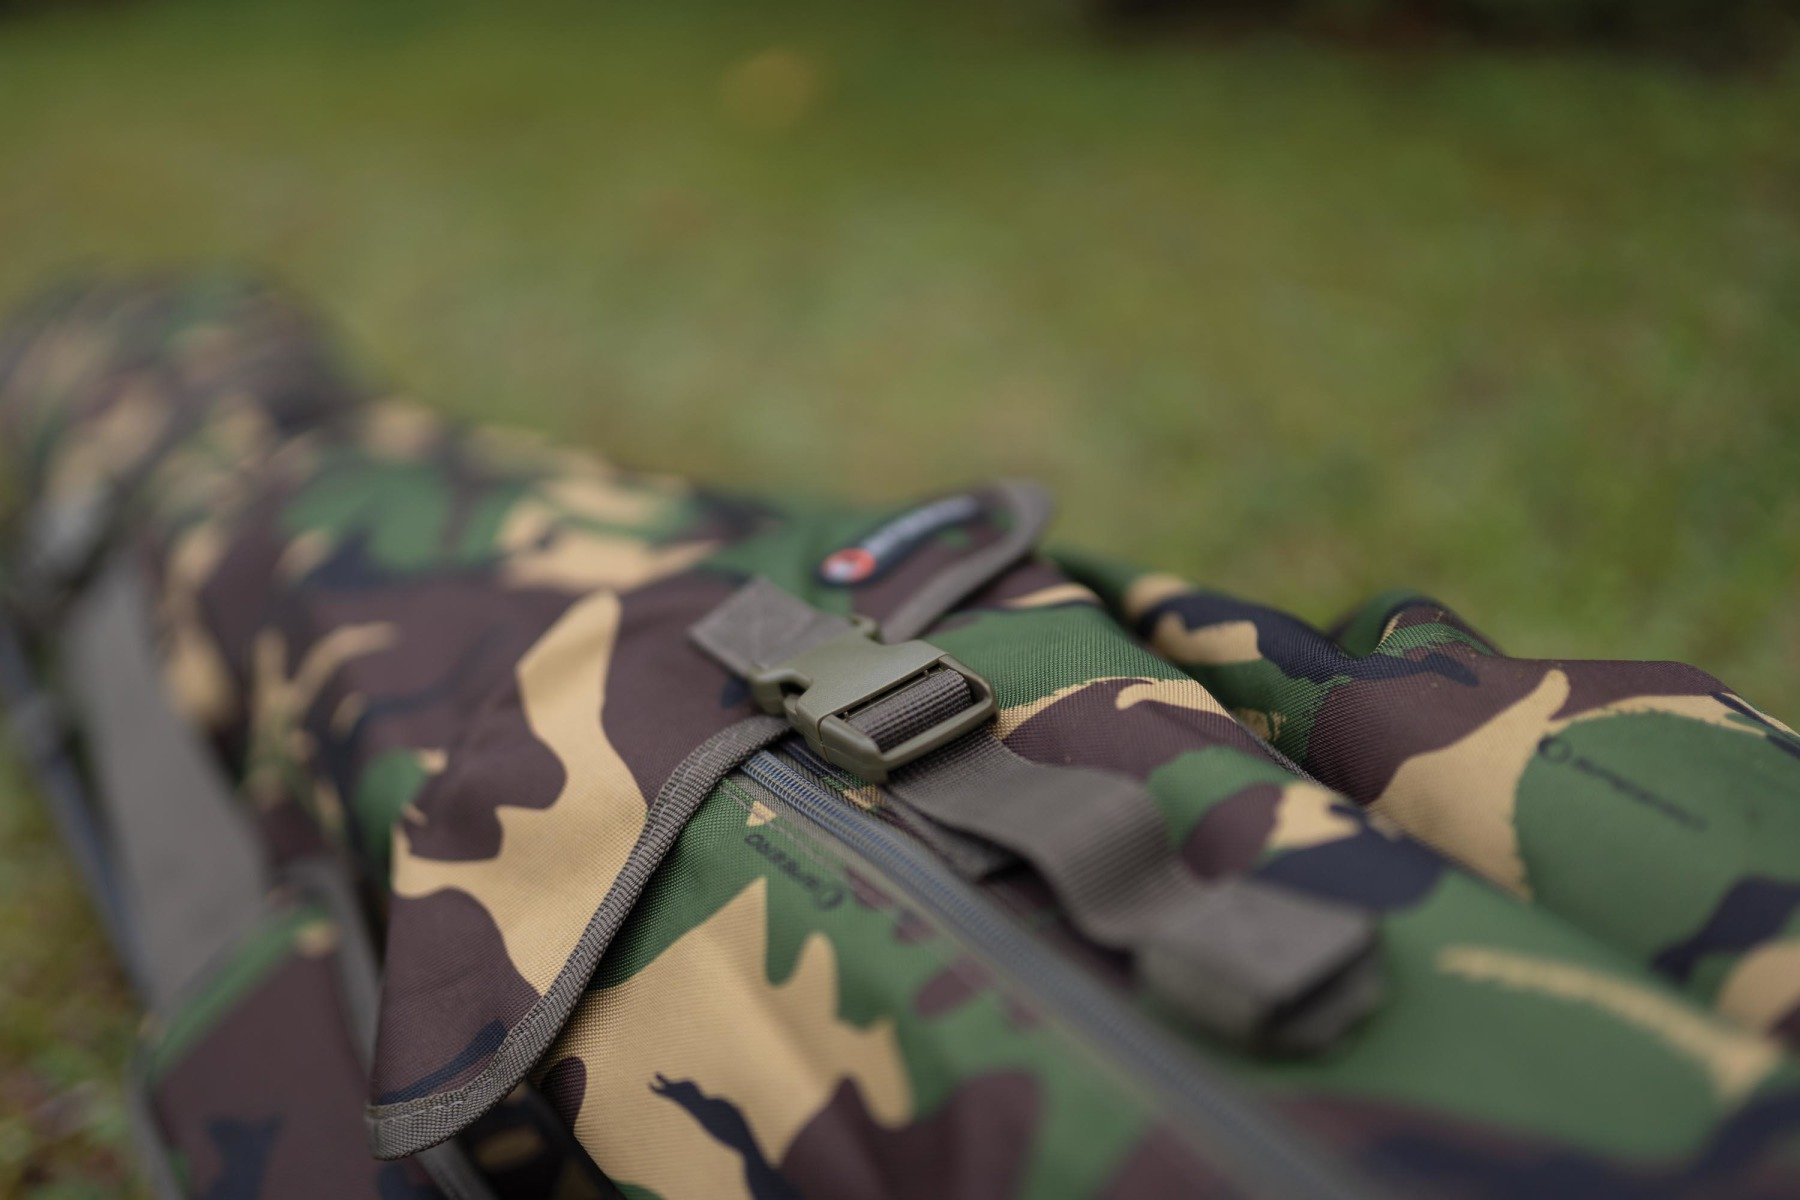 Plus two external pockets for nets, slings, retainers and a brolly-type bivvy